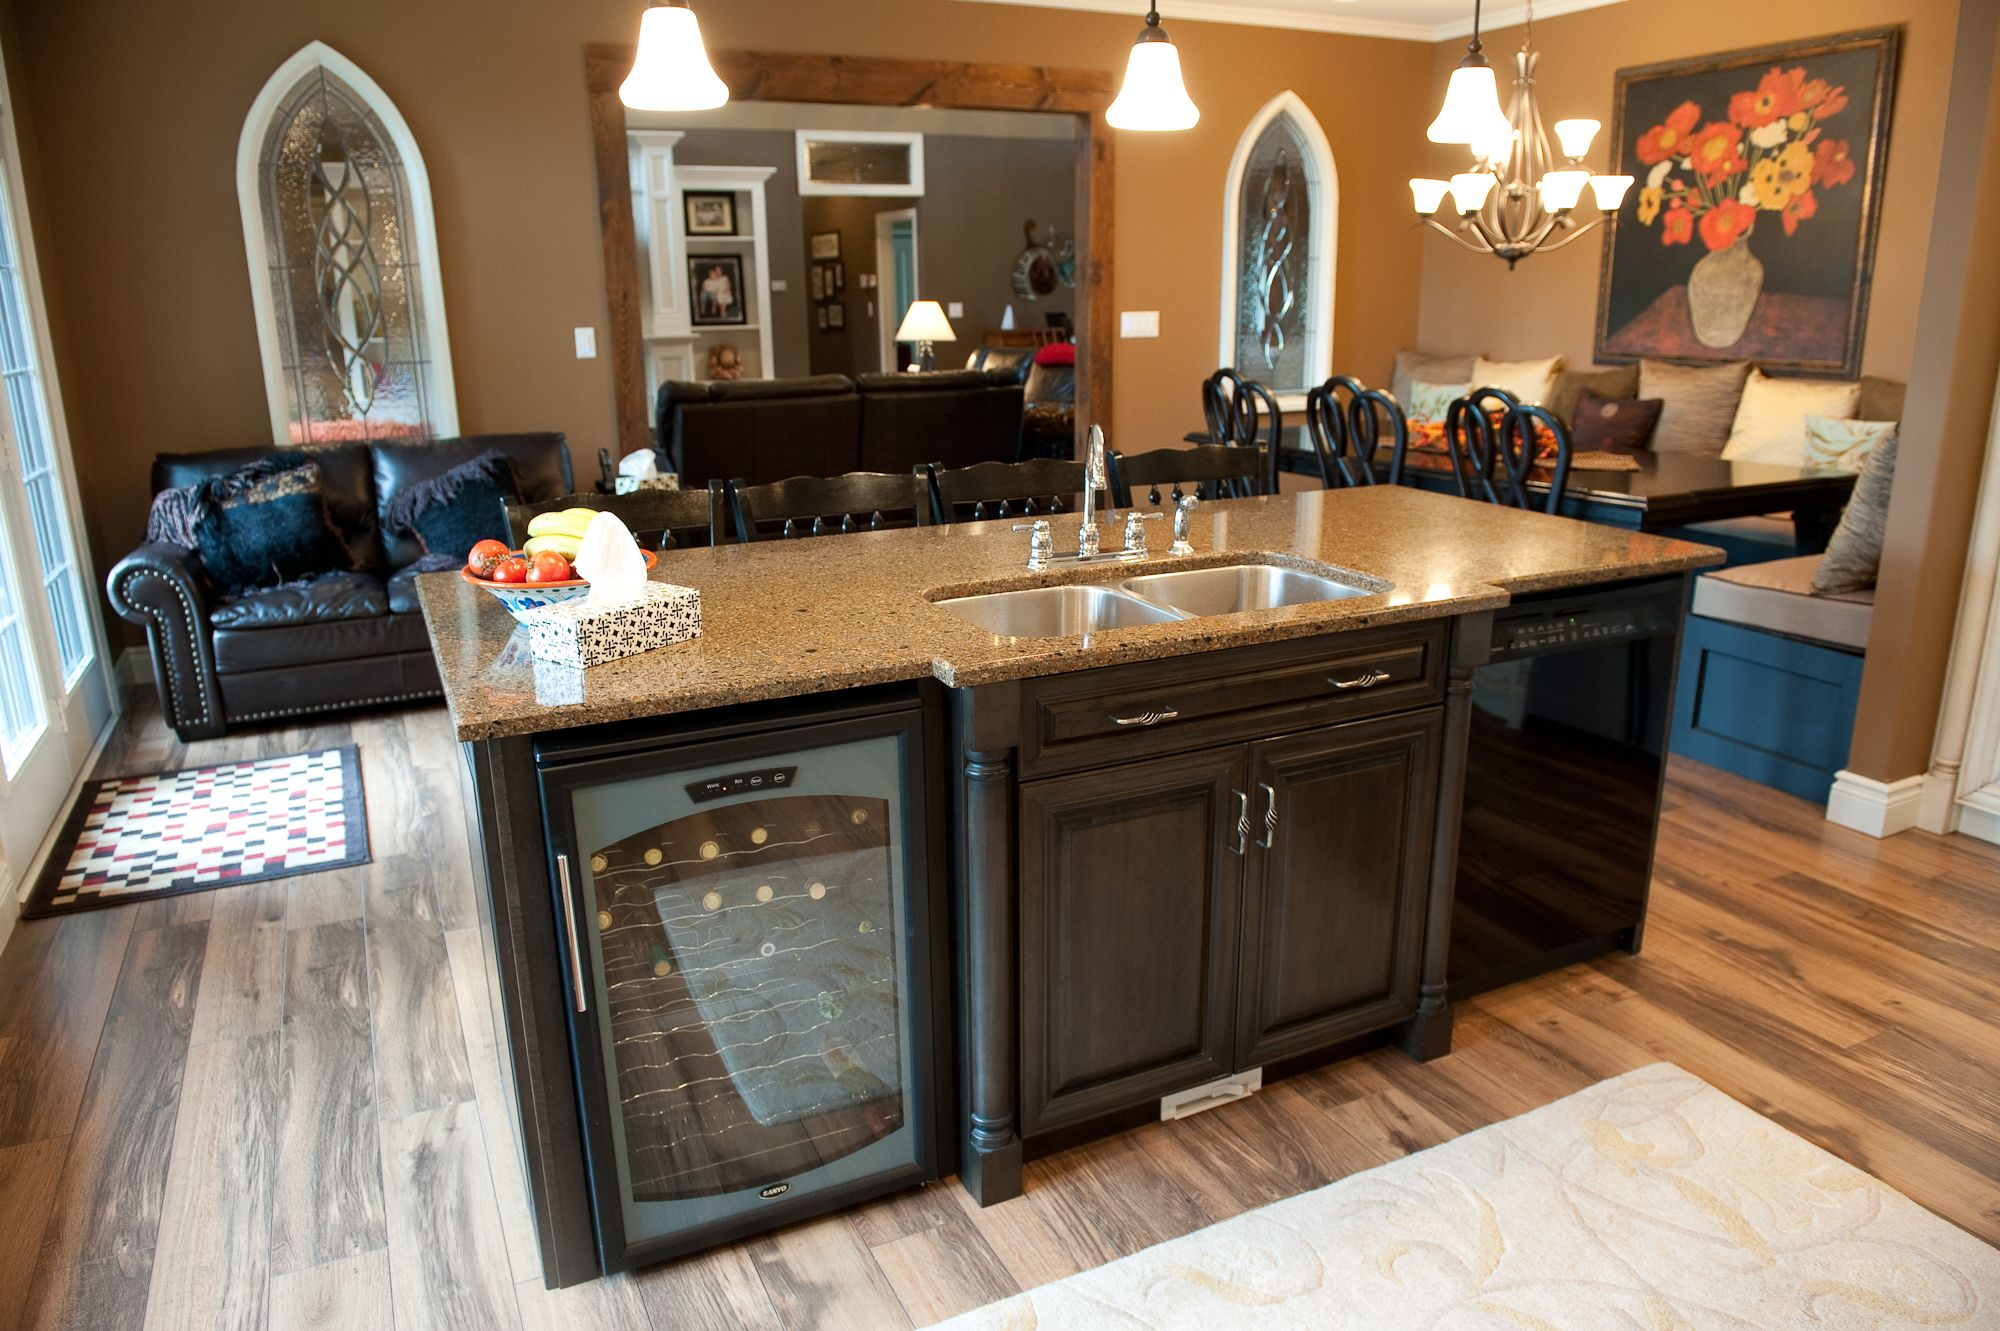 Large Island With Wine Fridge Kitchen Island With Sink Kitchen Island With Sink And Dishwasher Lake House Kitchen